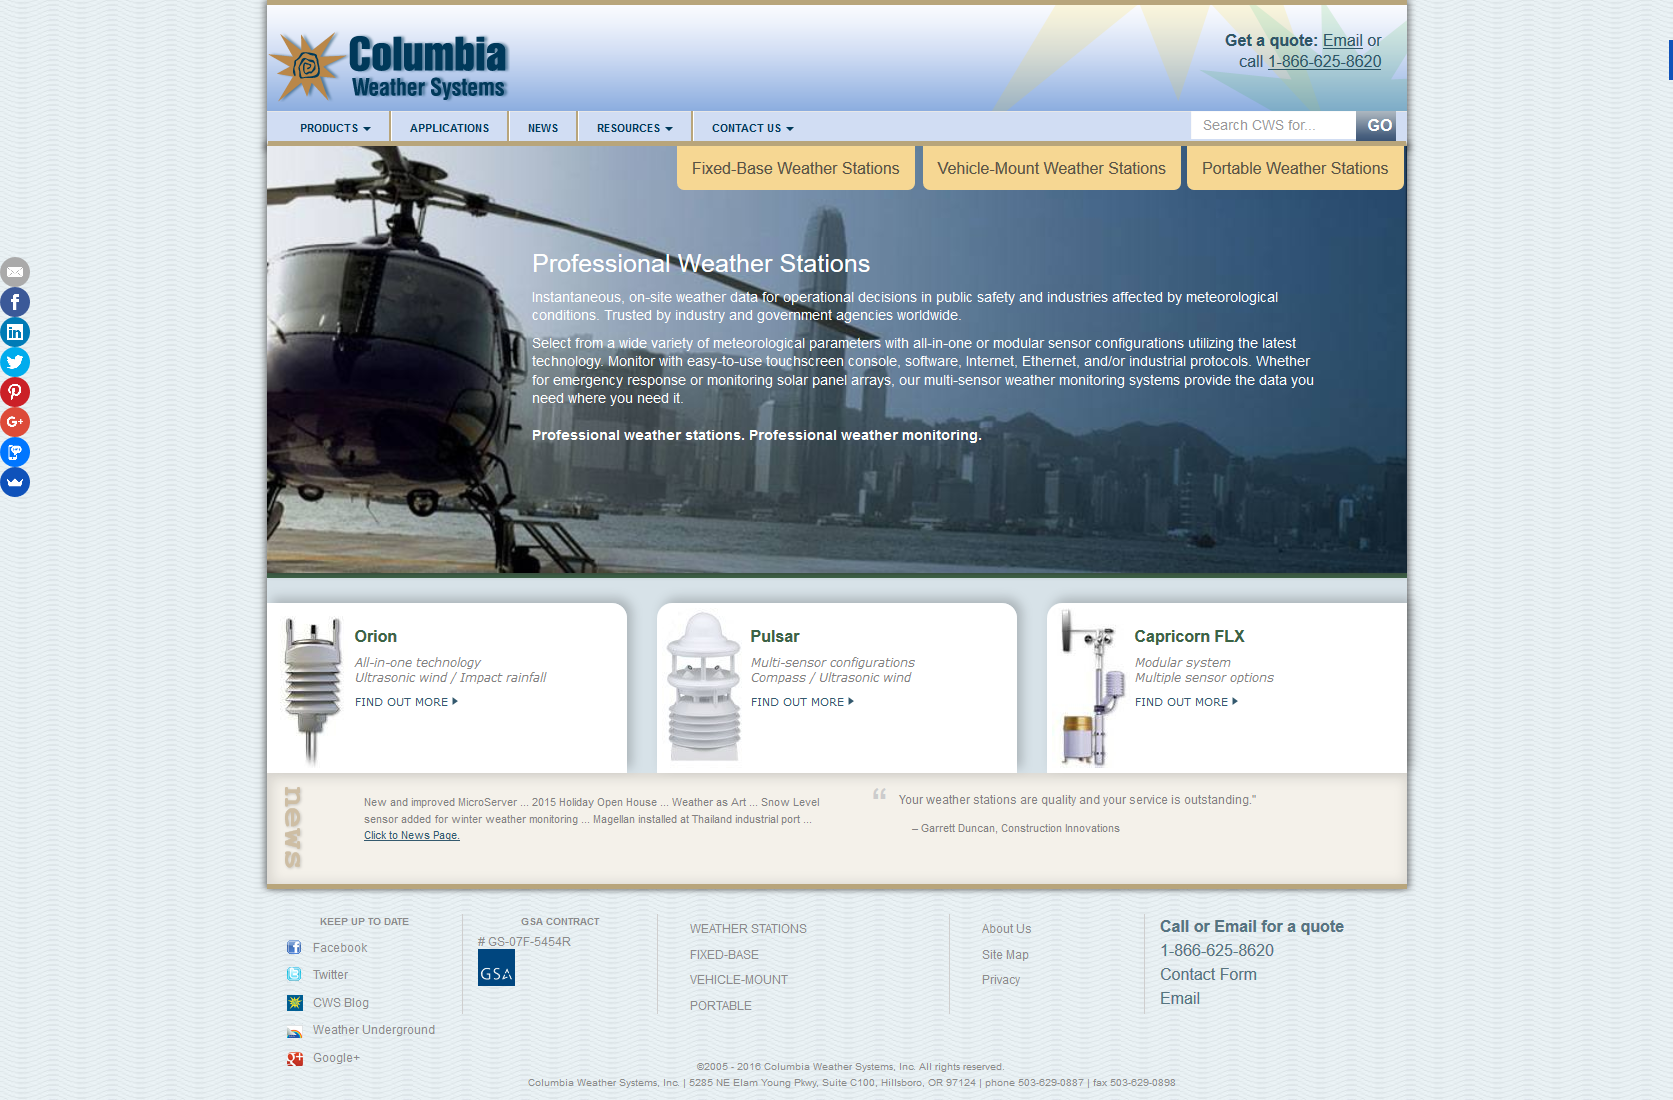 Columbia Weather Systems Website